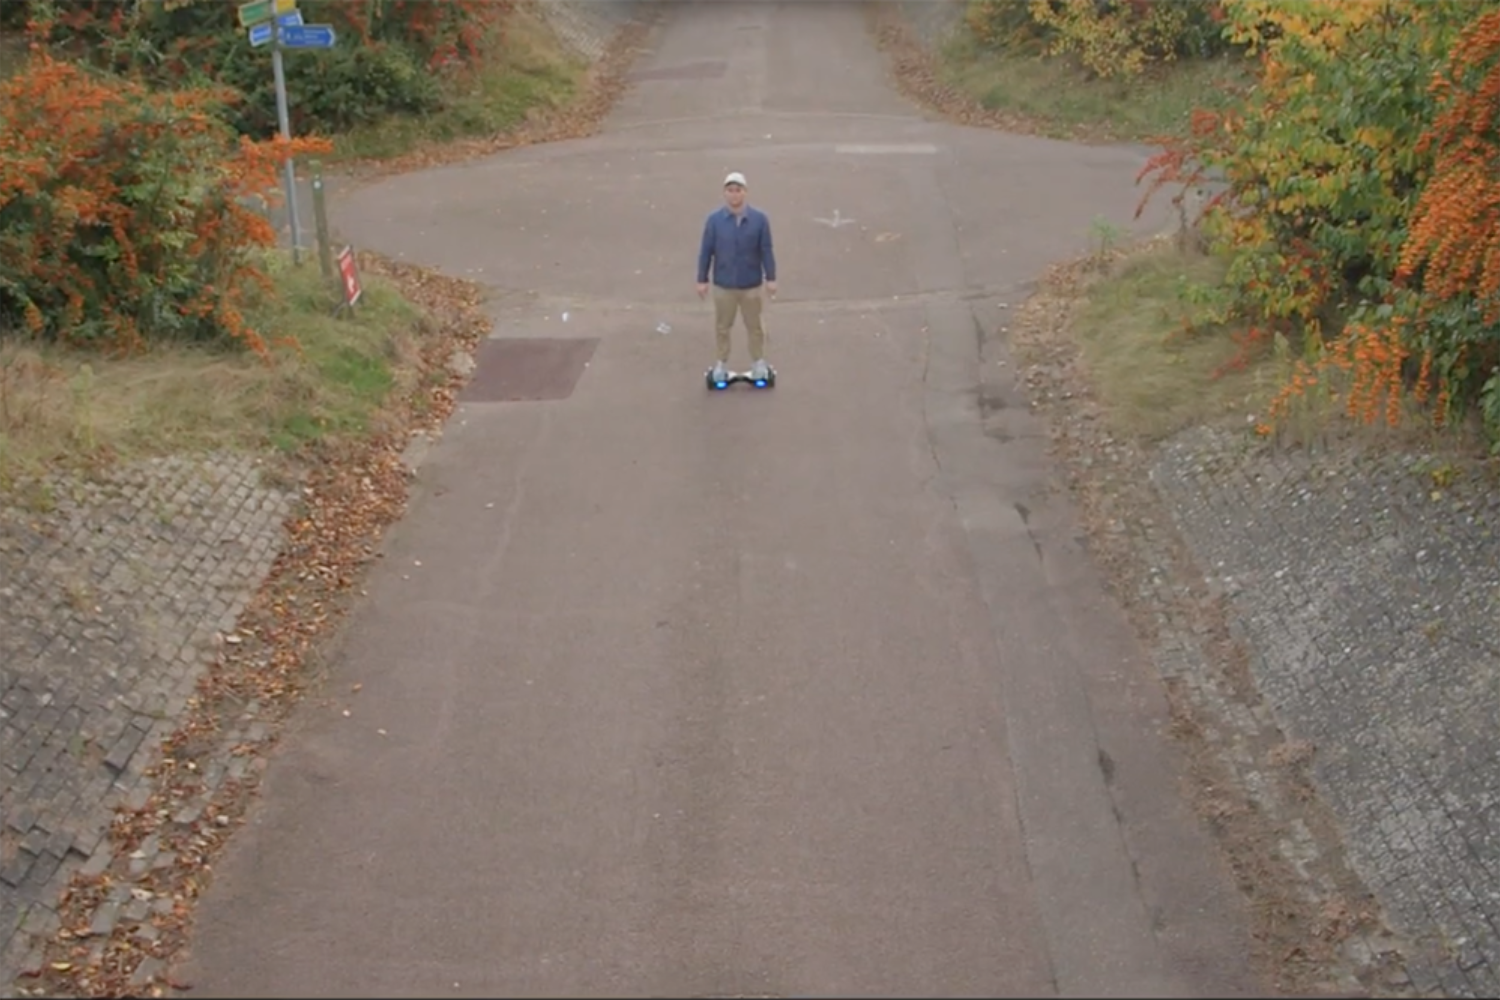 Wesley Gonzalez hoverboards around Milton Keynes in his 'Not That Kind of Guy' video